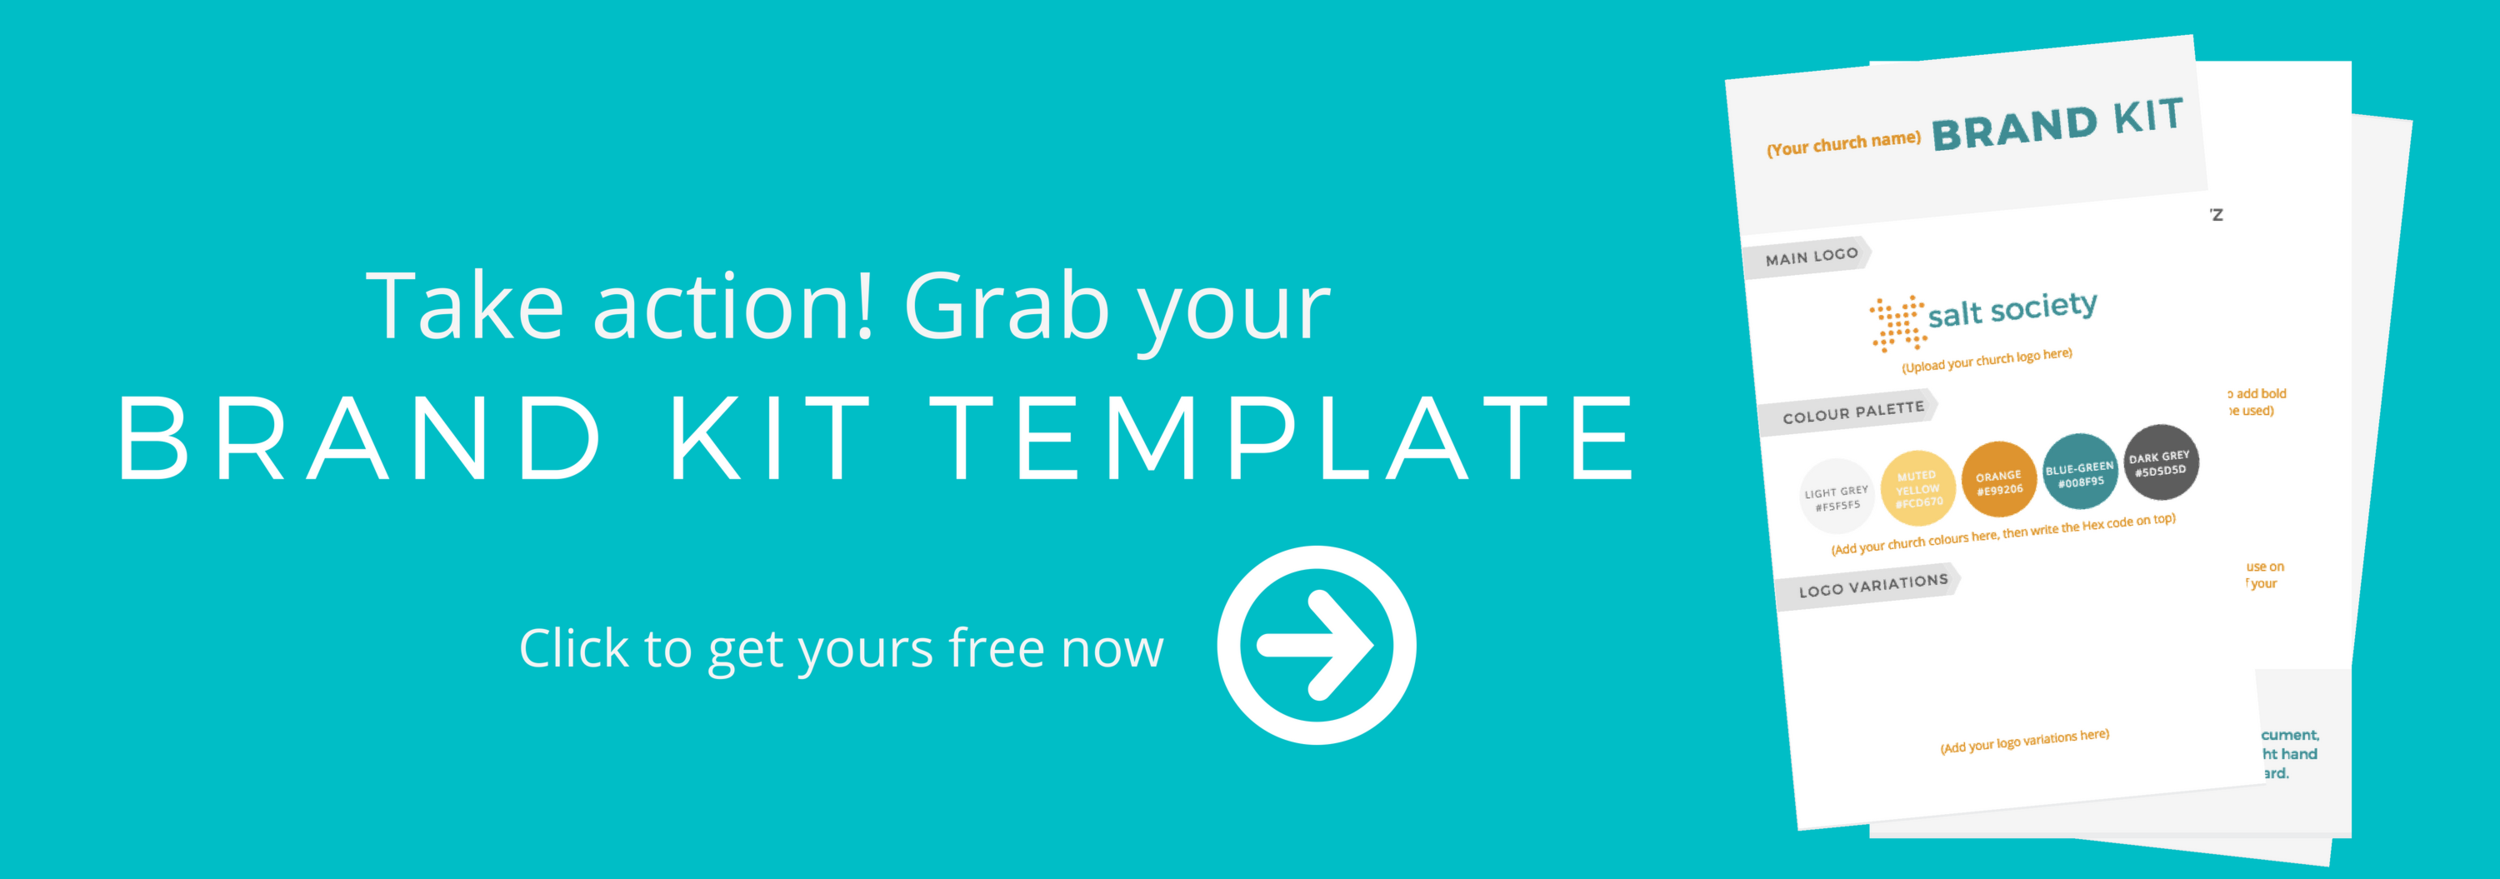 Church brand kit template opt in